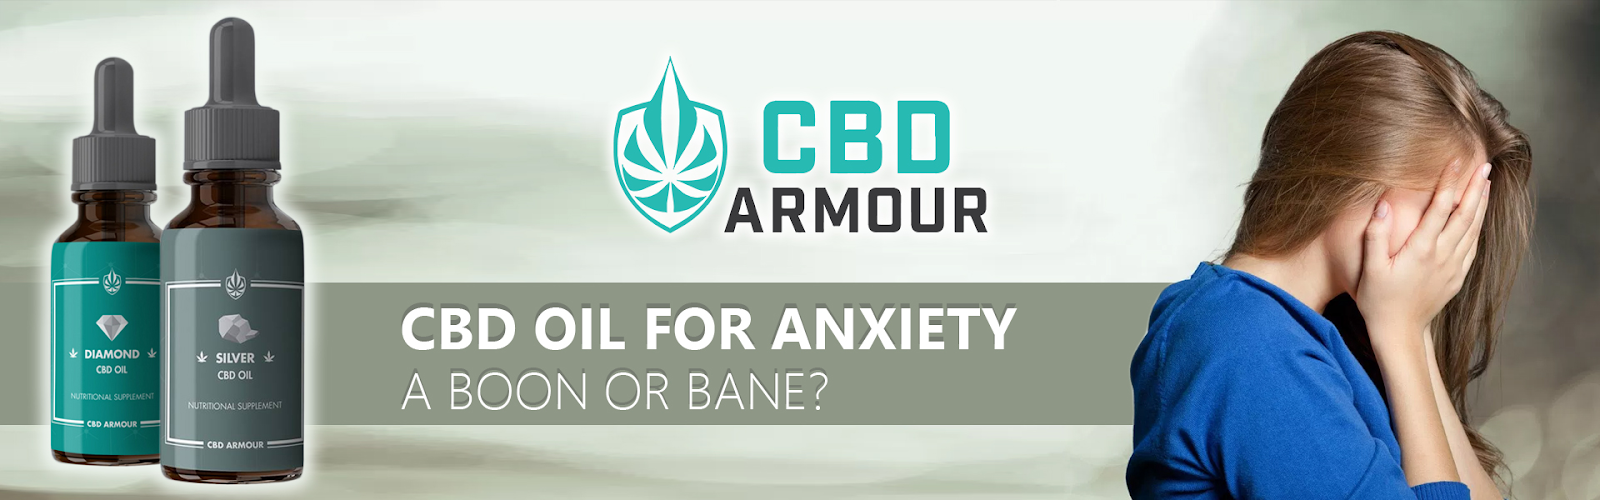 CBD Oil for Anxiety: A Boon or Bane